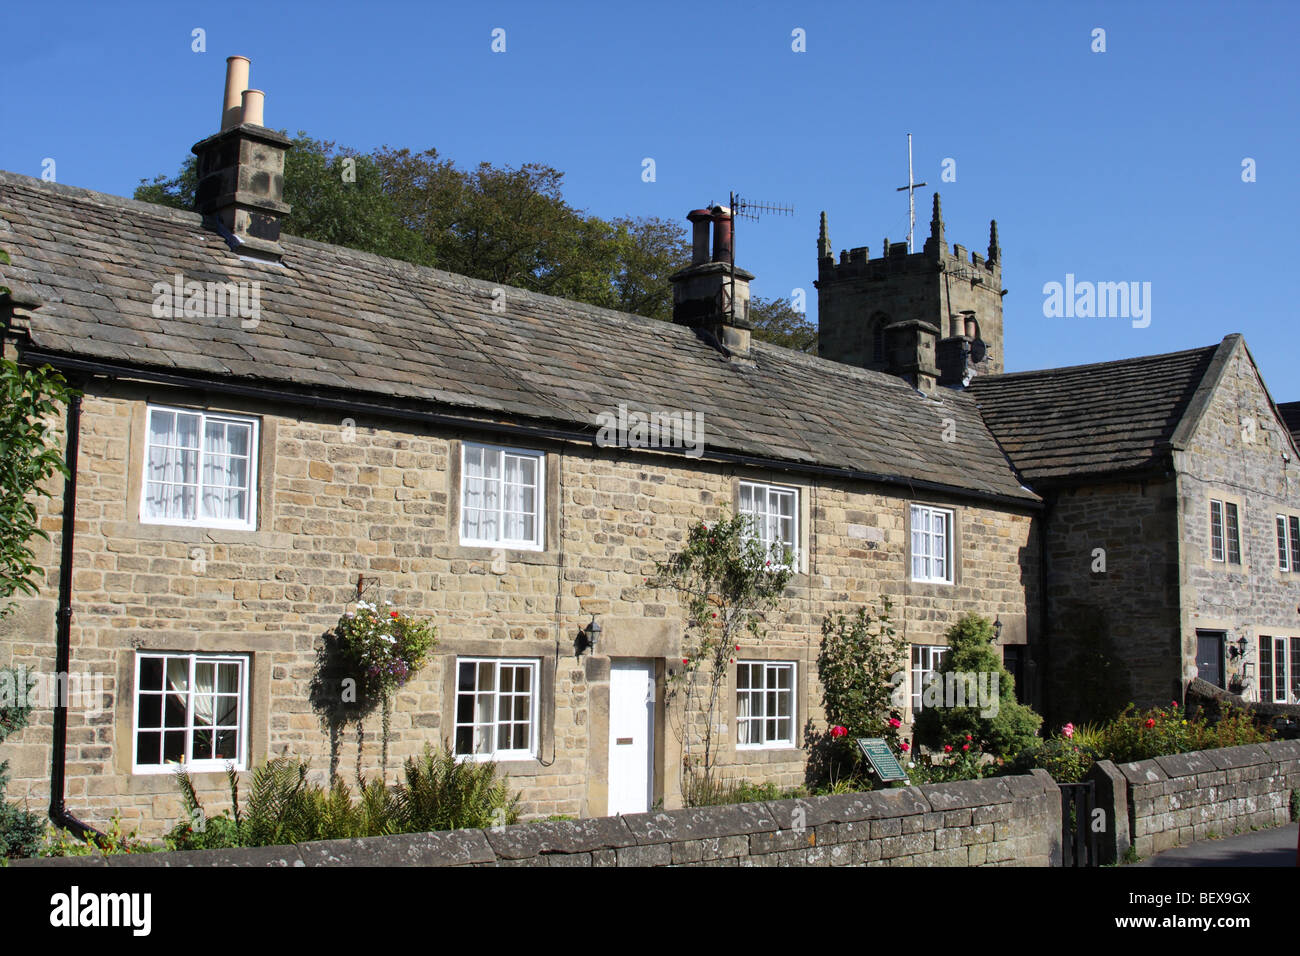 Plague cottages in the village of Eyam, Derbyshire, England, U.K. Stock Photo